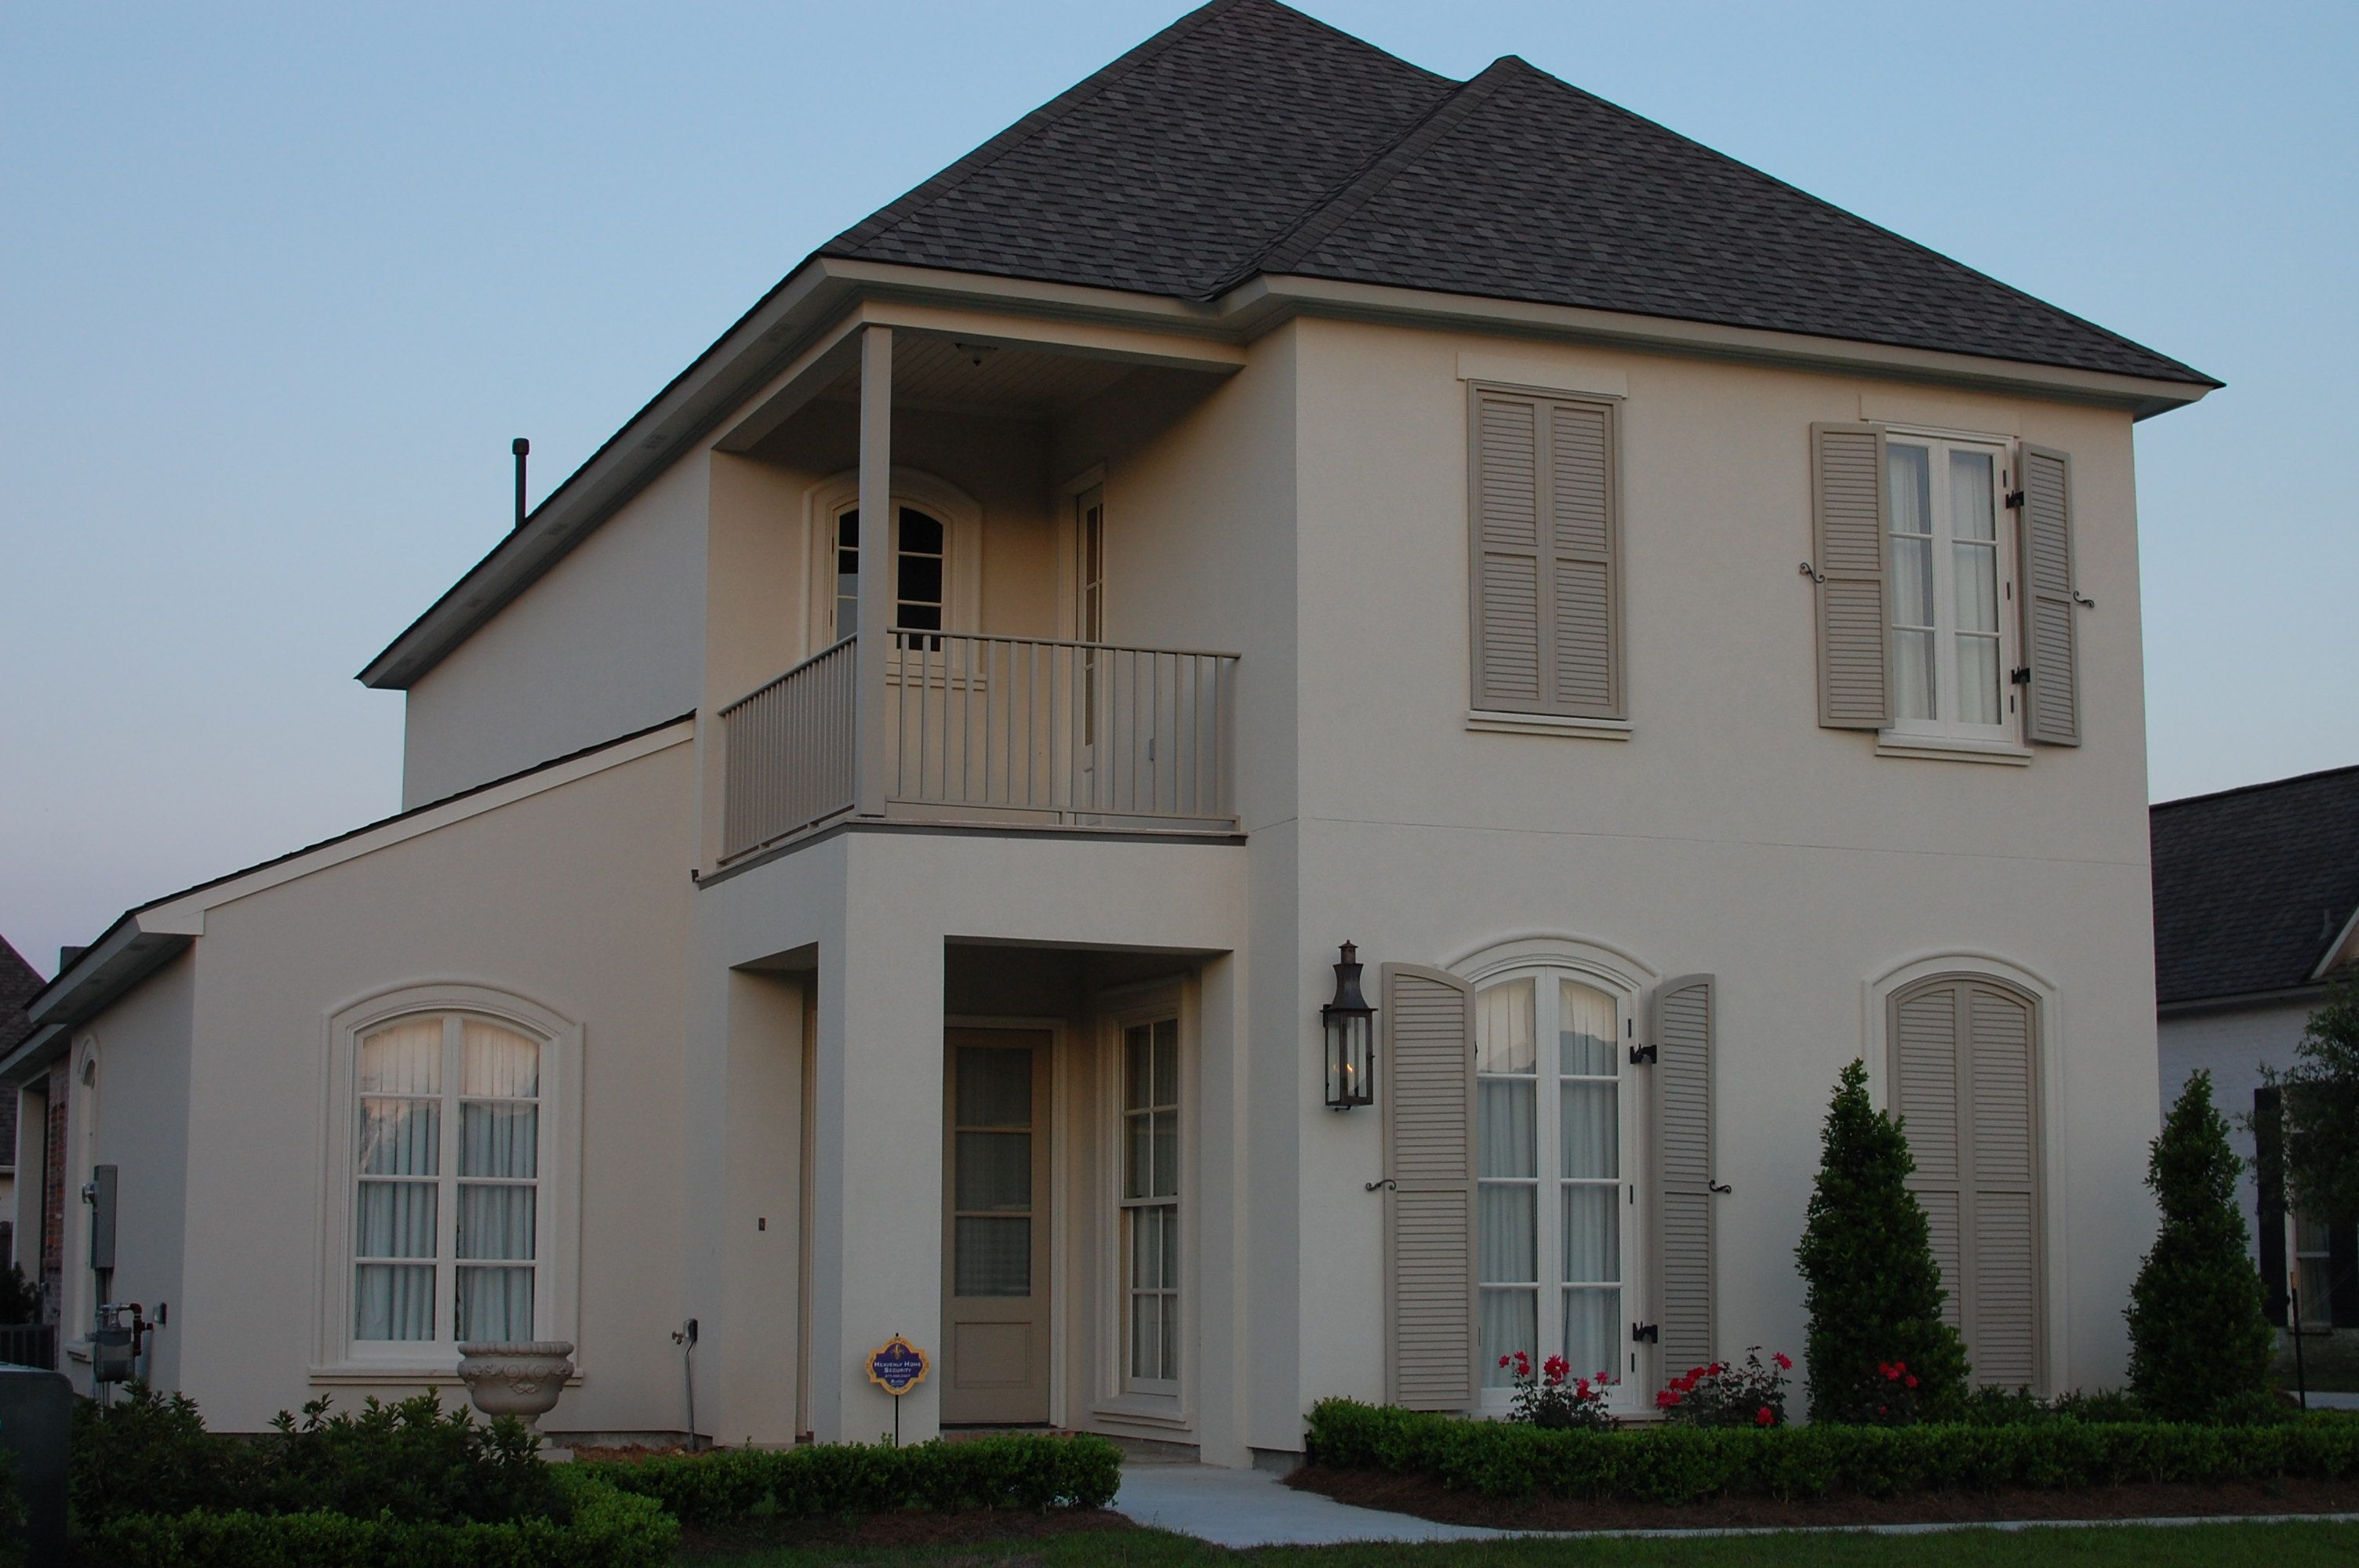 Ballet white brandon beige benjamin moore previous work - Exterior paint coverage on stucco ...